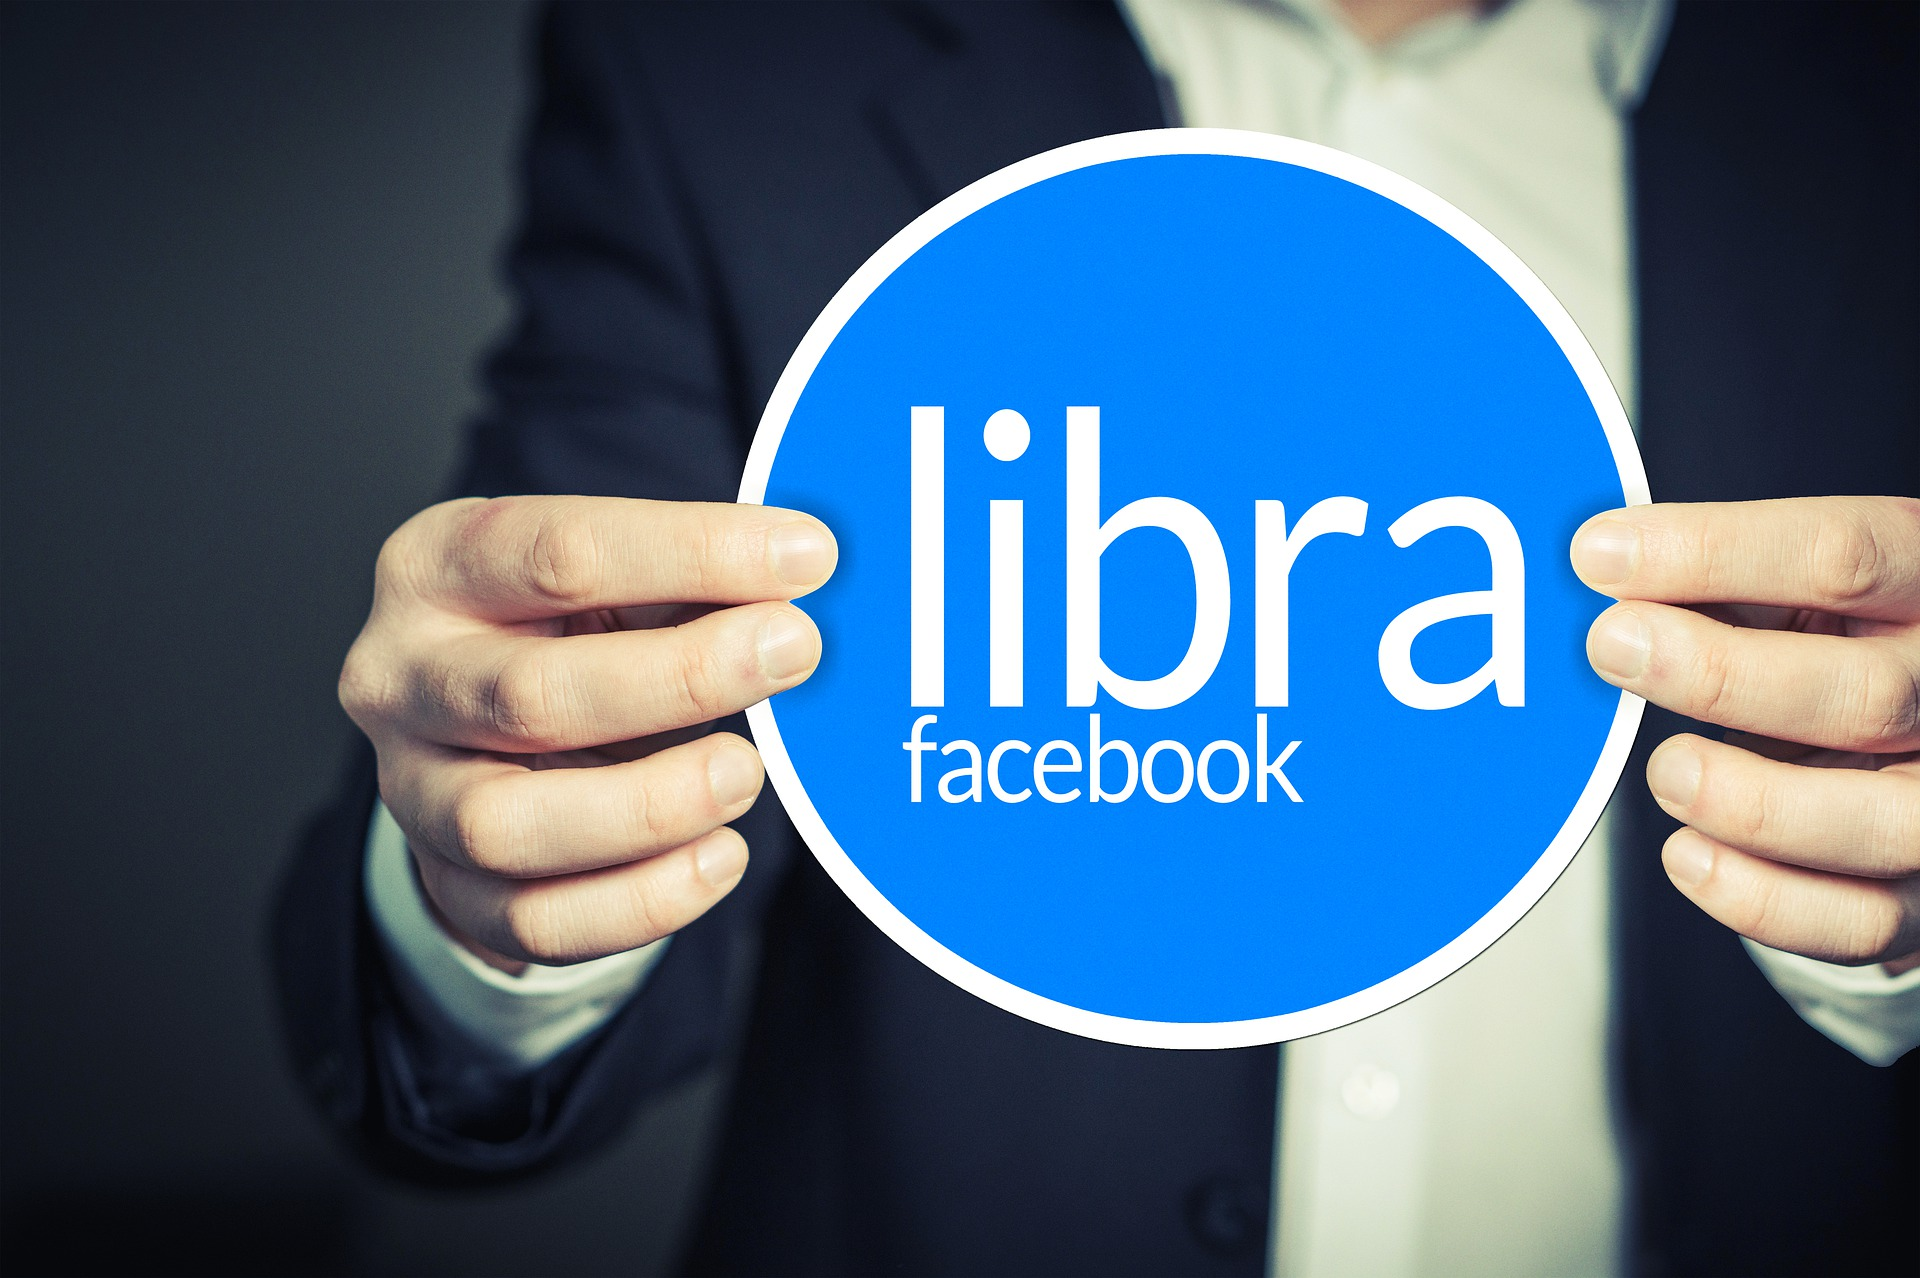 Libra Association Forms Steering Committee to Guide Technical Development